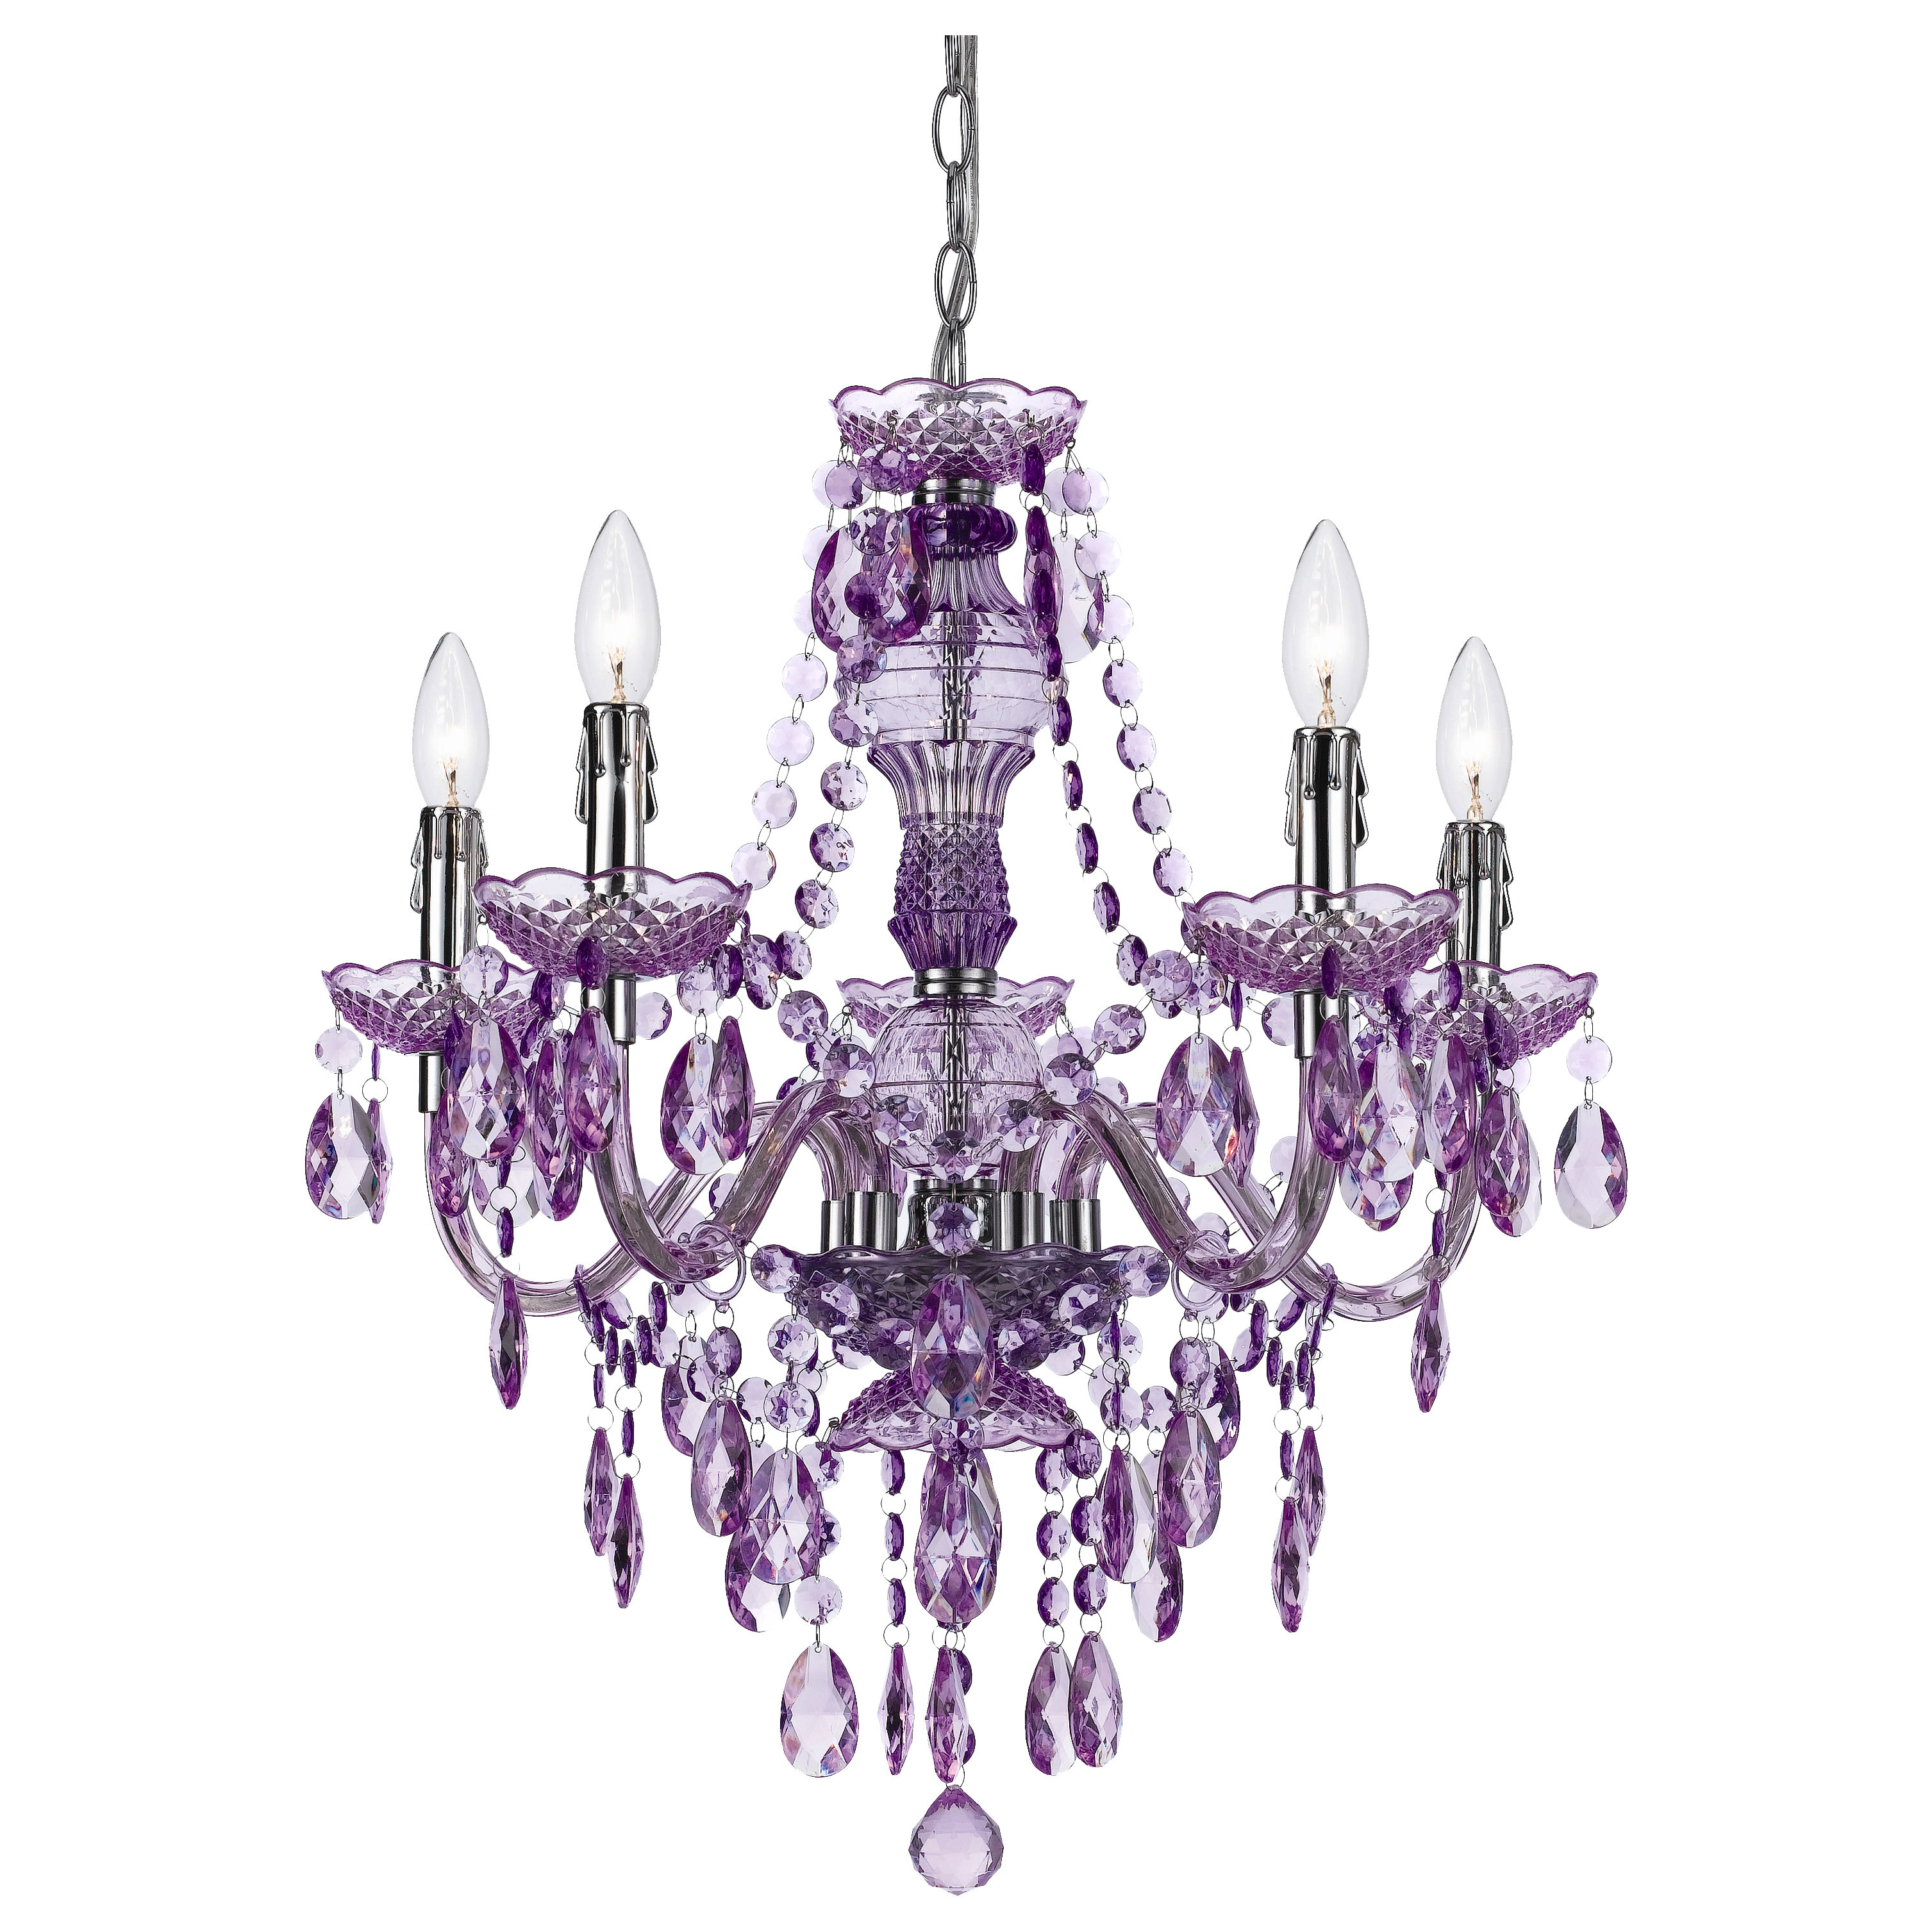 Popular Aldora 4 Light Candle Style Chandeliers For Alisha 5 Light Candle Style Chandelier (View 20 of 25)